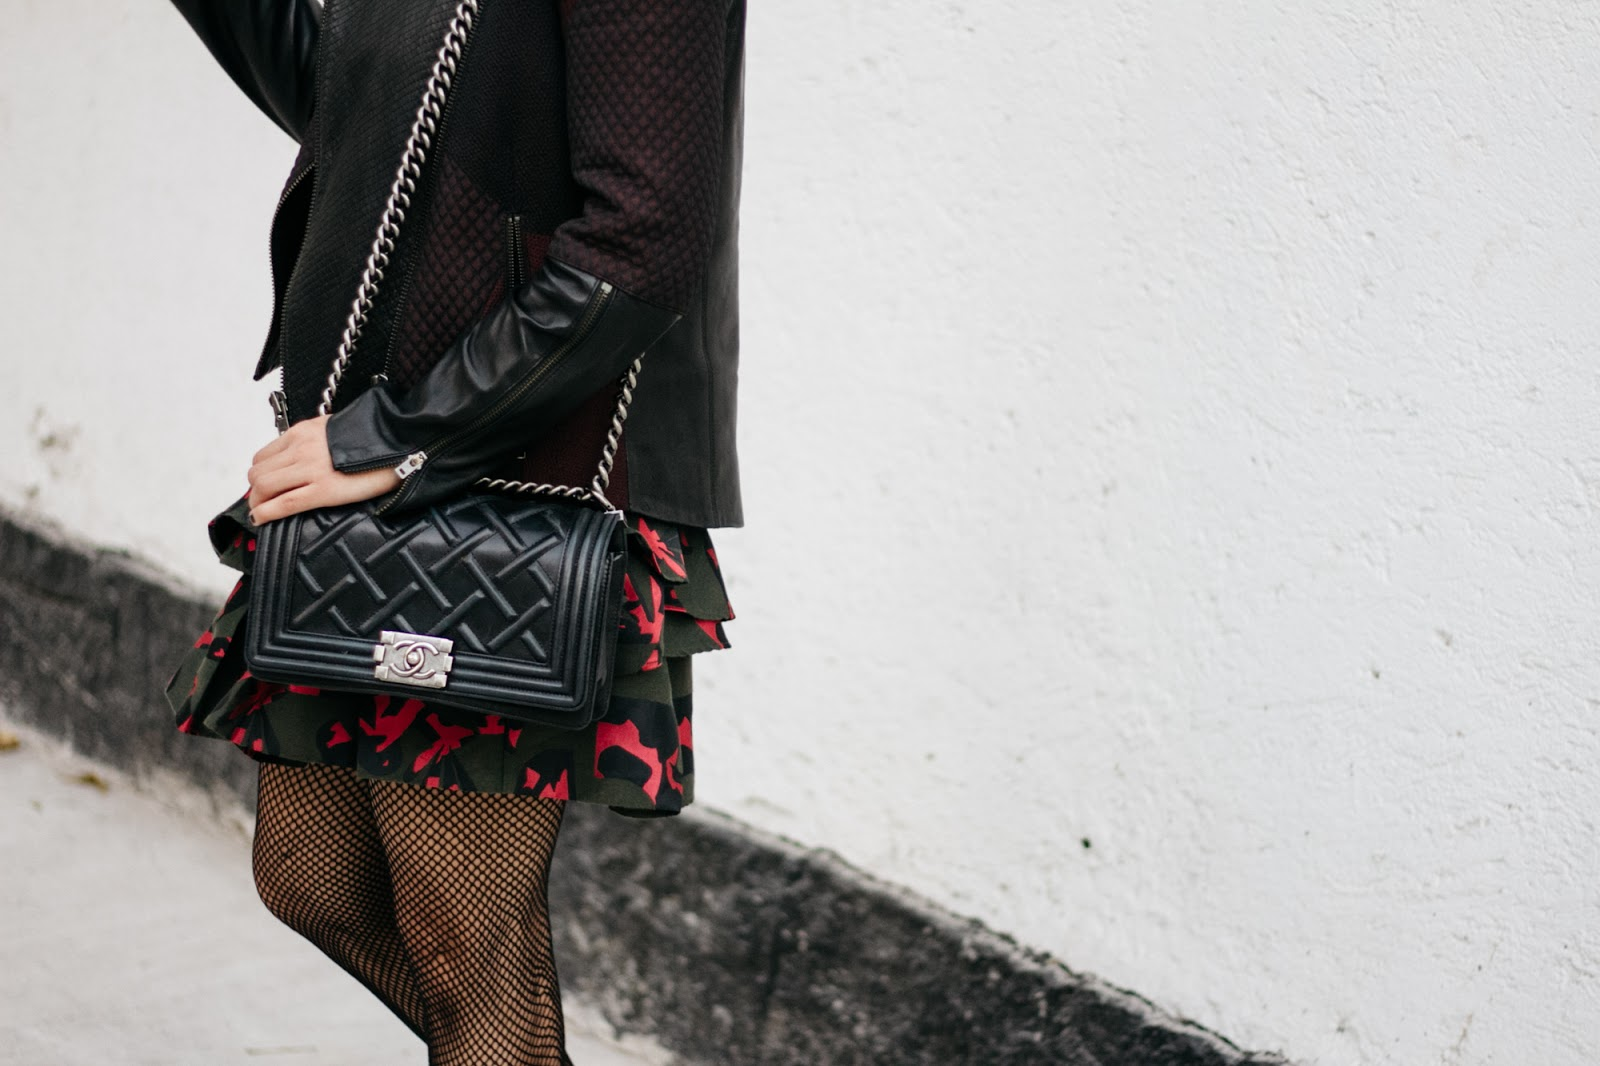 Discussion on this topic: The Diary: Chanel, Helmut Lang More, the-diary-chanel-helmut-lang-more/